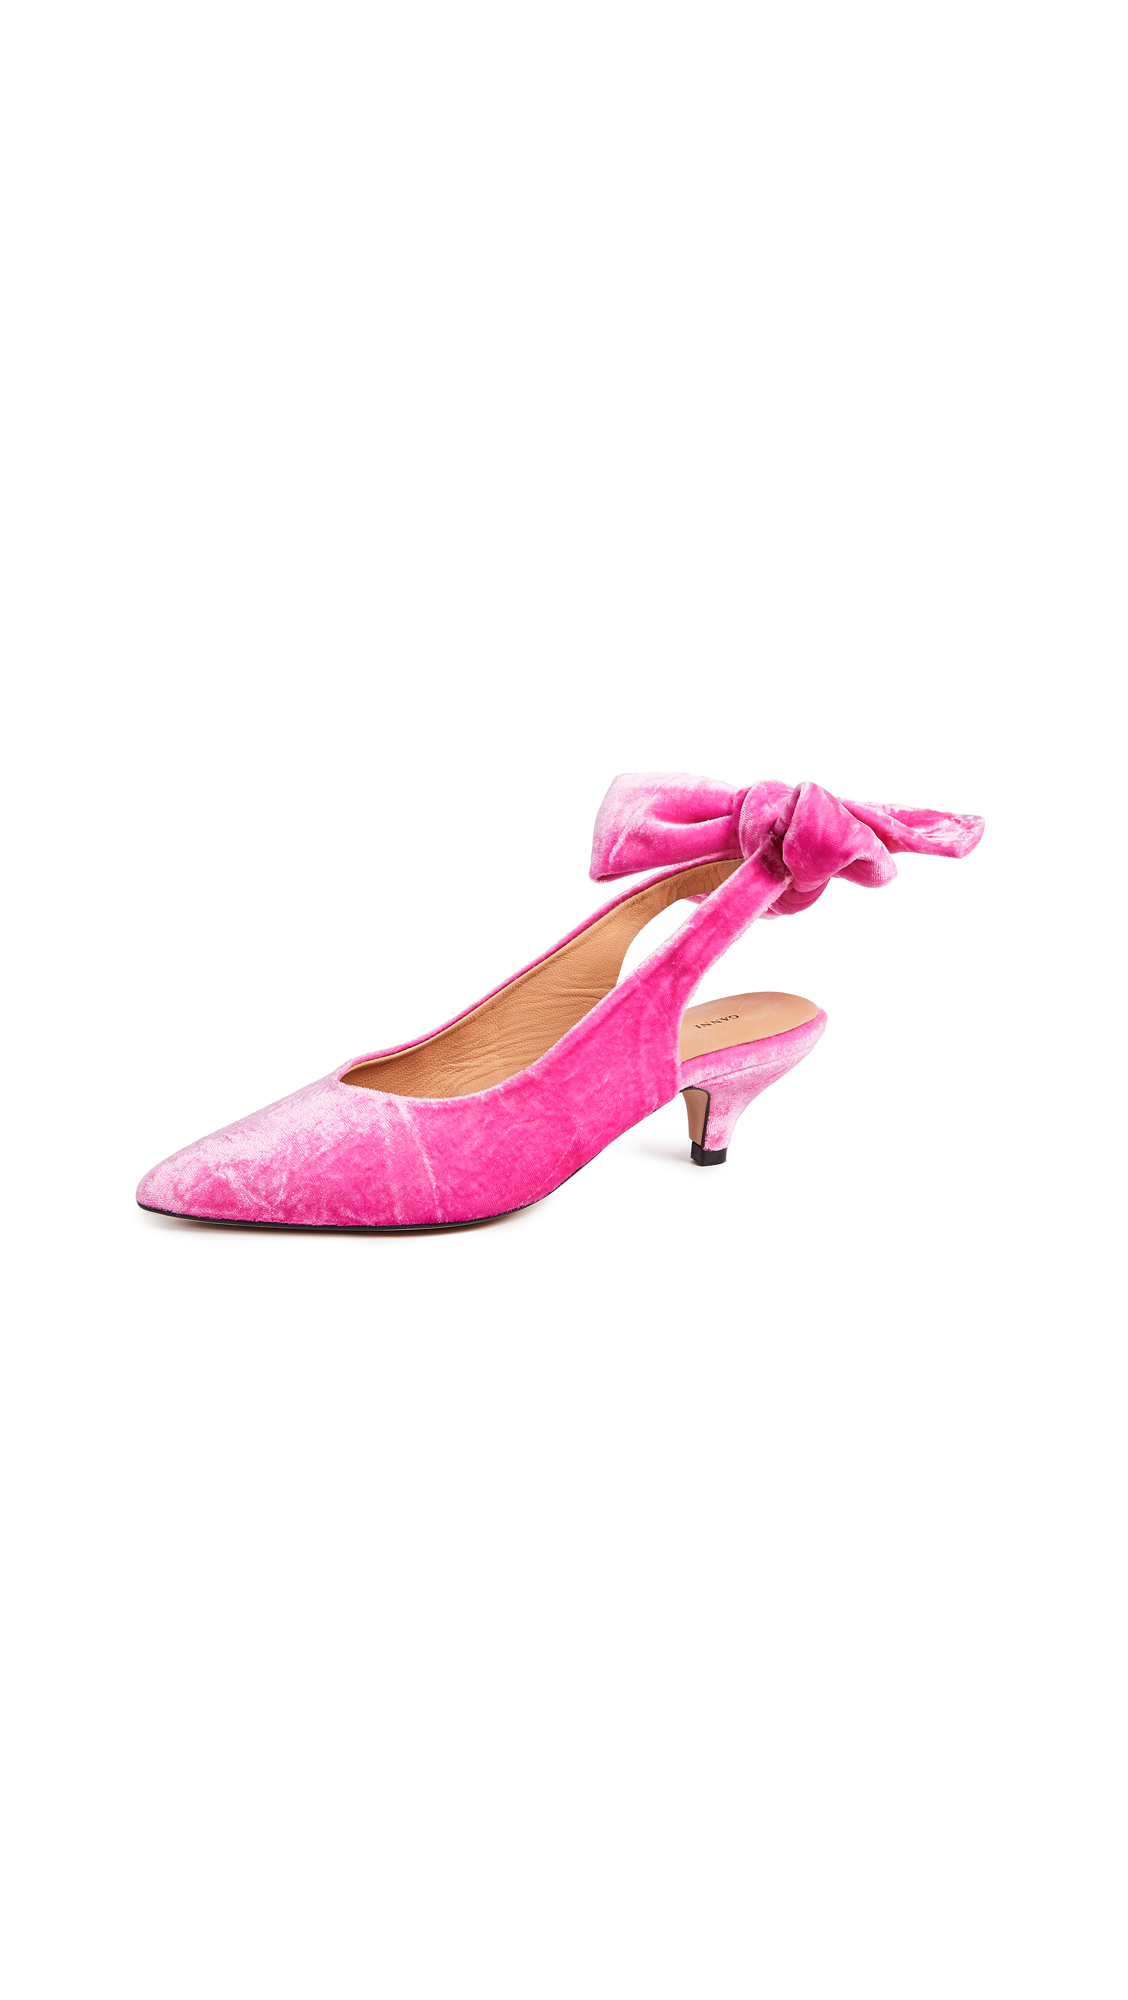 Ganni Sabine Slingback Pumps - Hot Pink